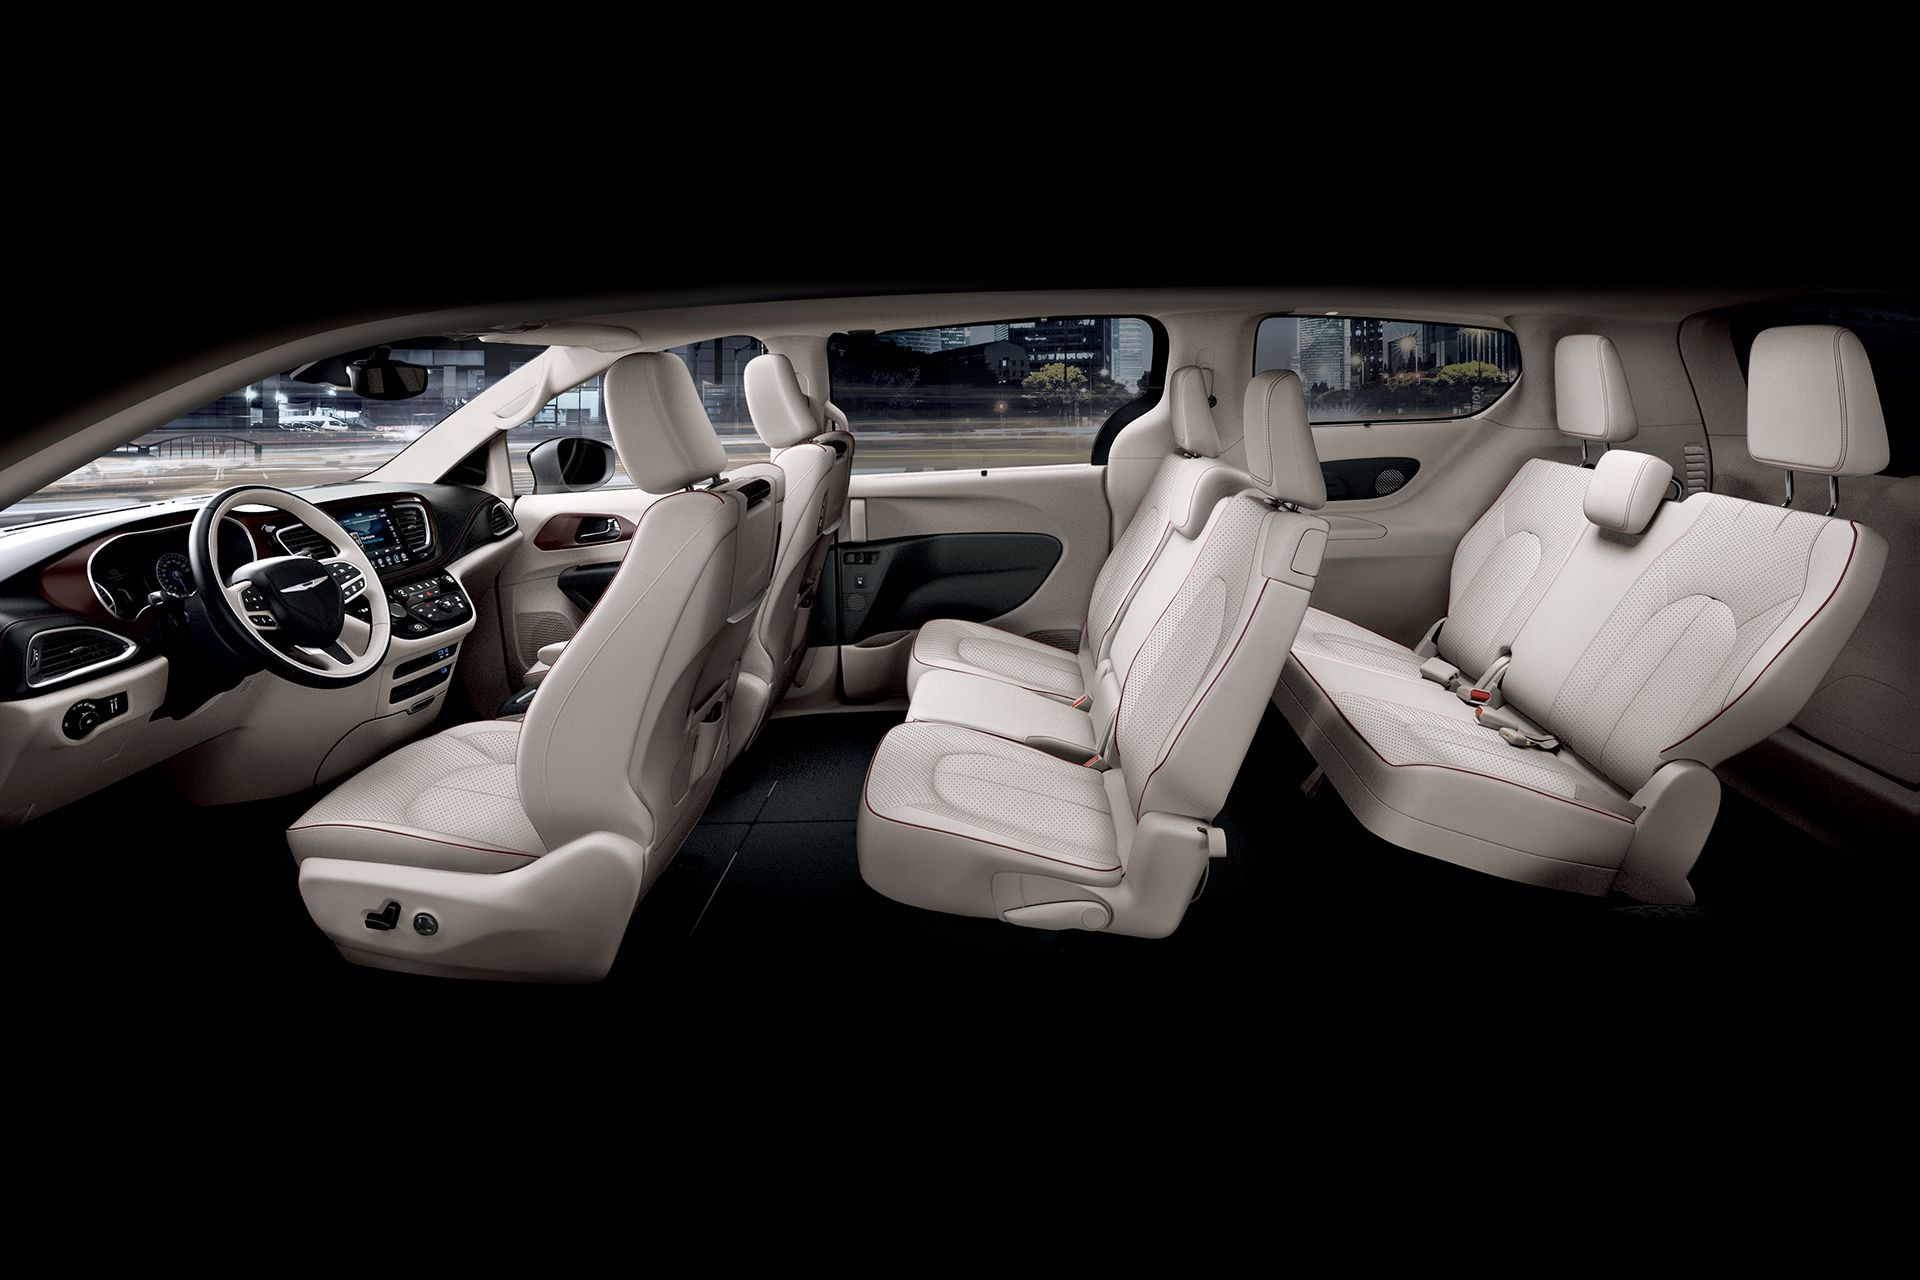 2018 Chrysler Pacifica Interior Side Seating Seat Configuration